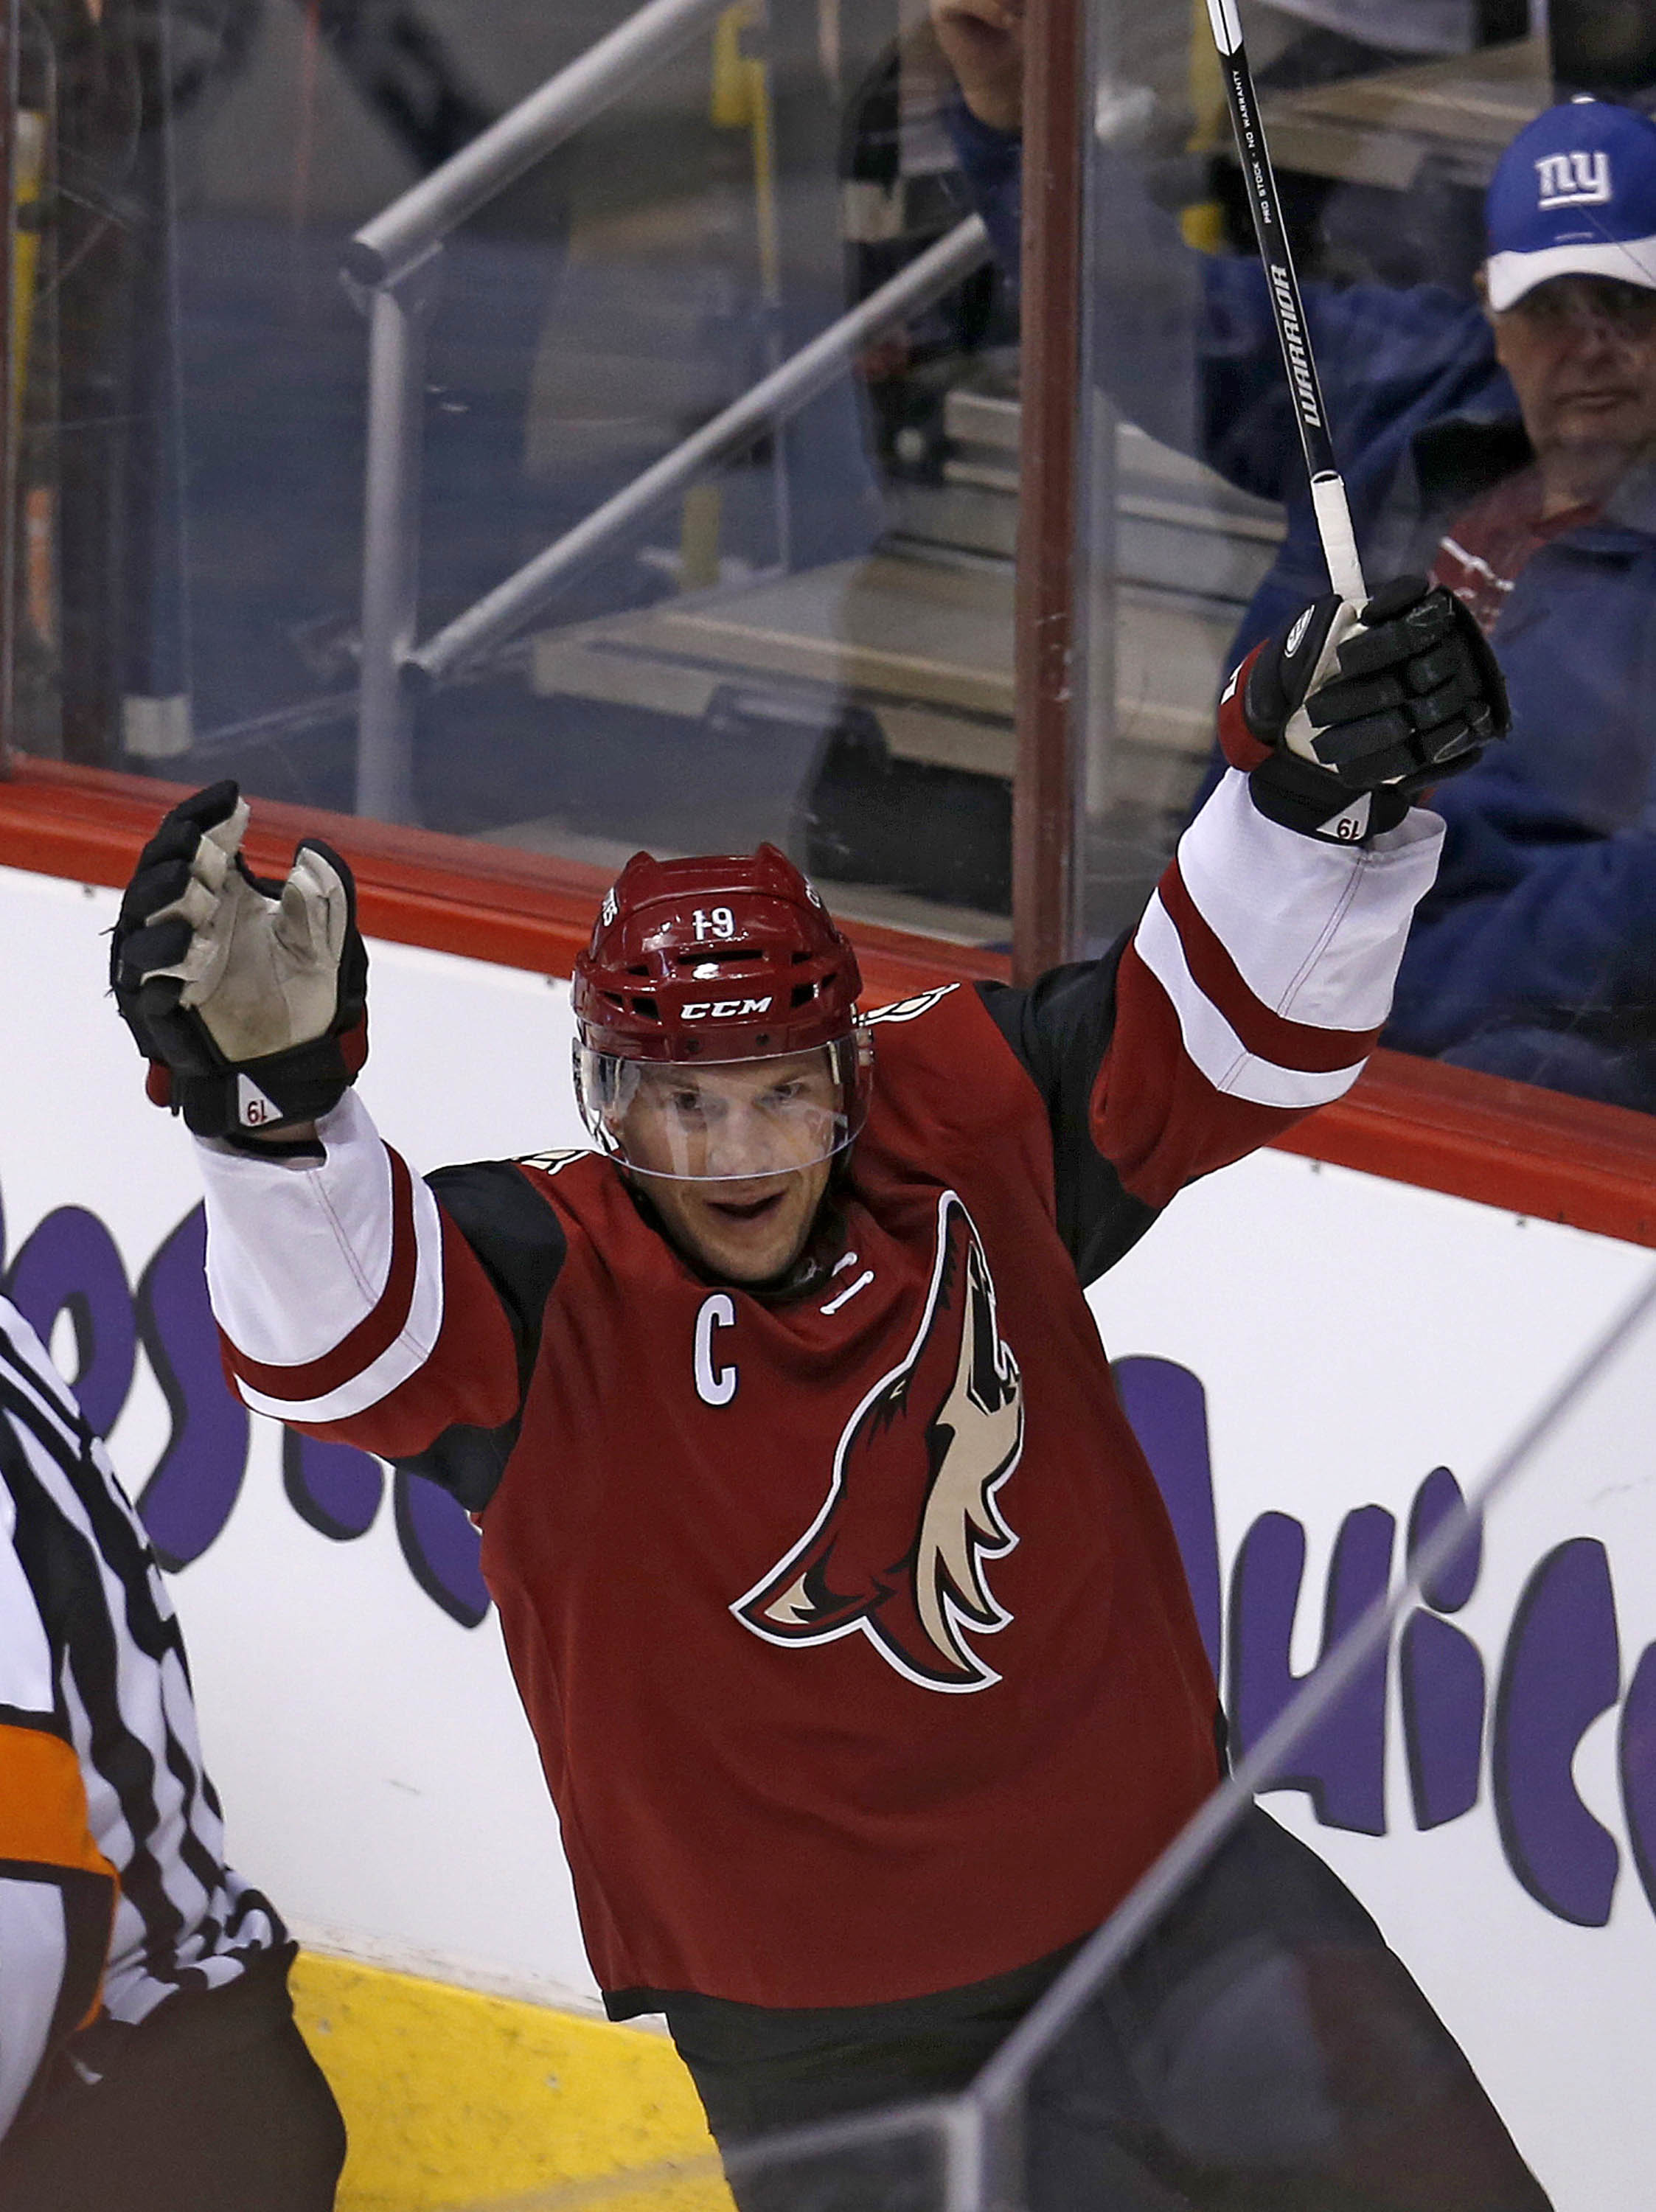 Arizona Coyotes right wing Shane Doan scores a goal in the first period during an NHL hockey game against Winnipeg Jets, Thiursday, Dec. 31, 2015, in Glendale, Ariz. Doan becomes the all time franchise scoring leader with his 380th goal. (AP Photo/Rick Sc